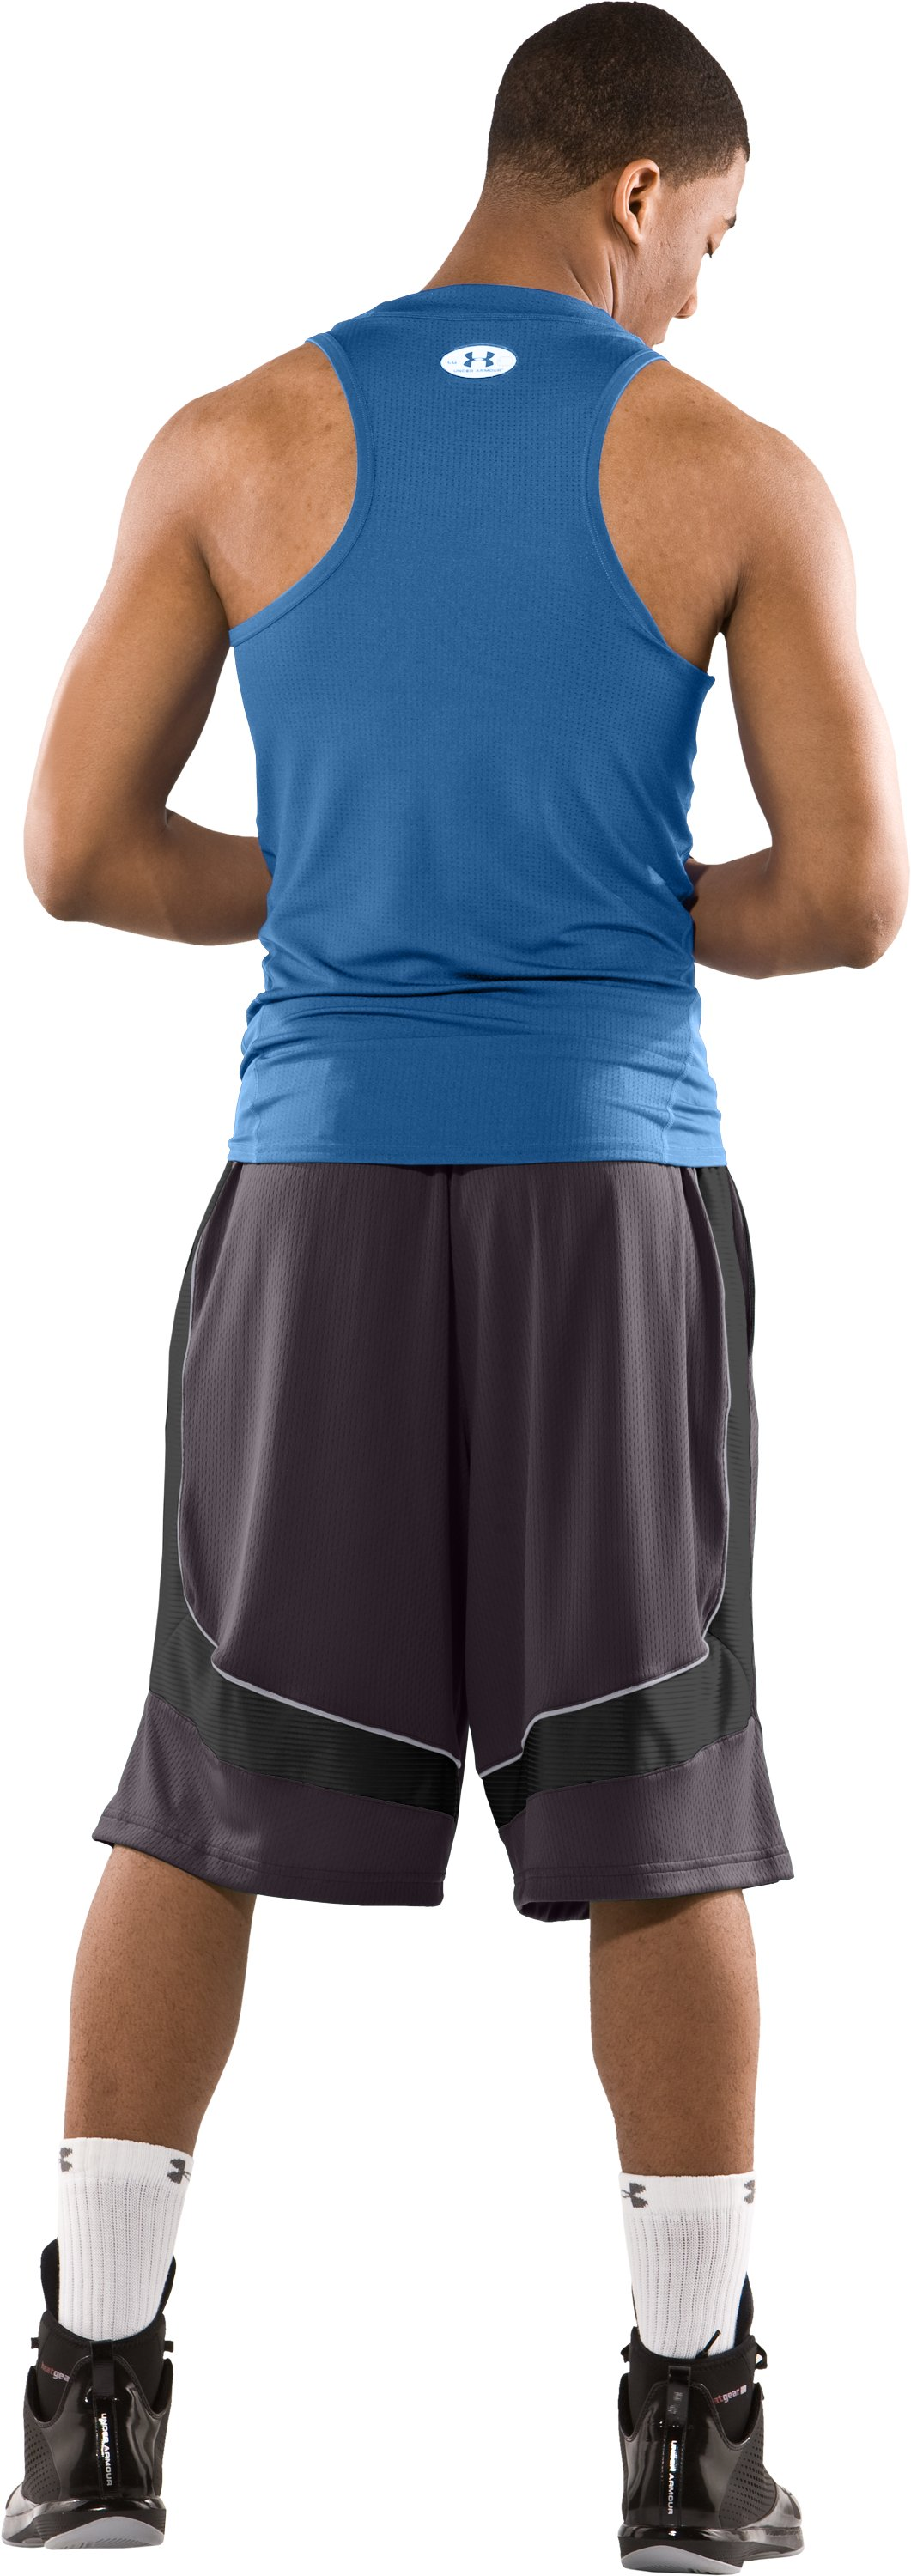 "Men's 12"" Flow Basketball Shorts, Charcoal, Back"